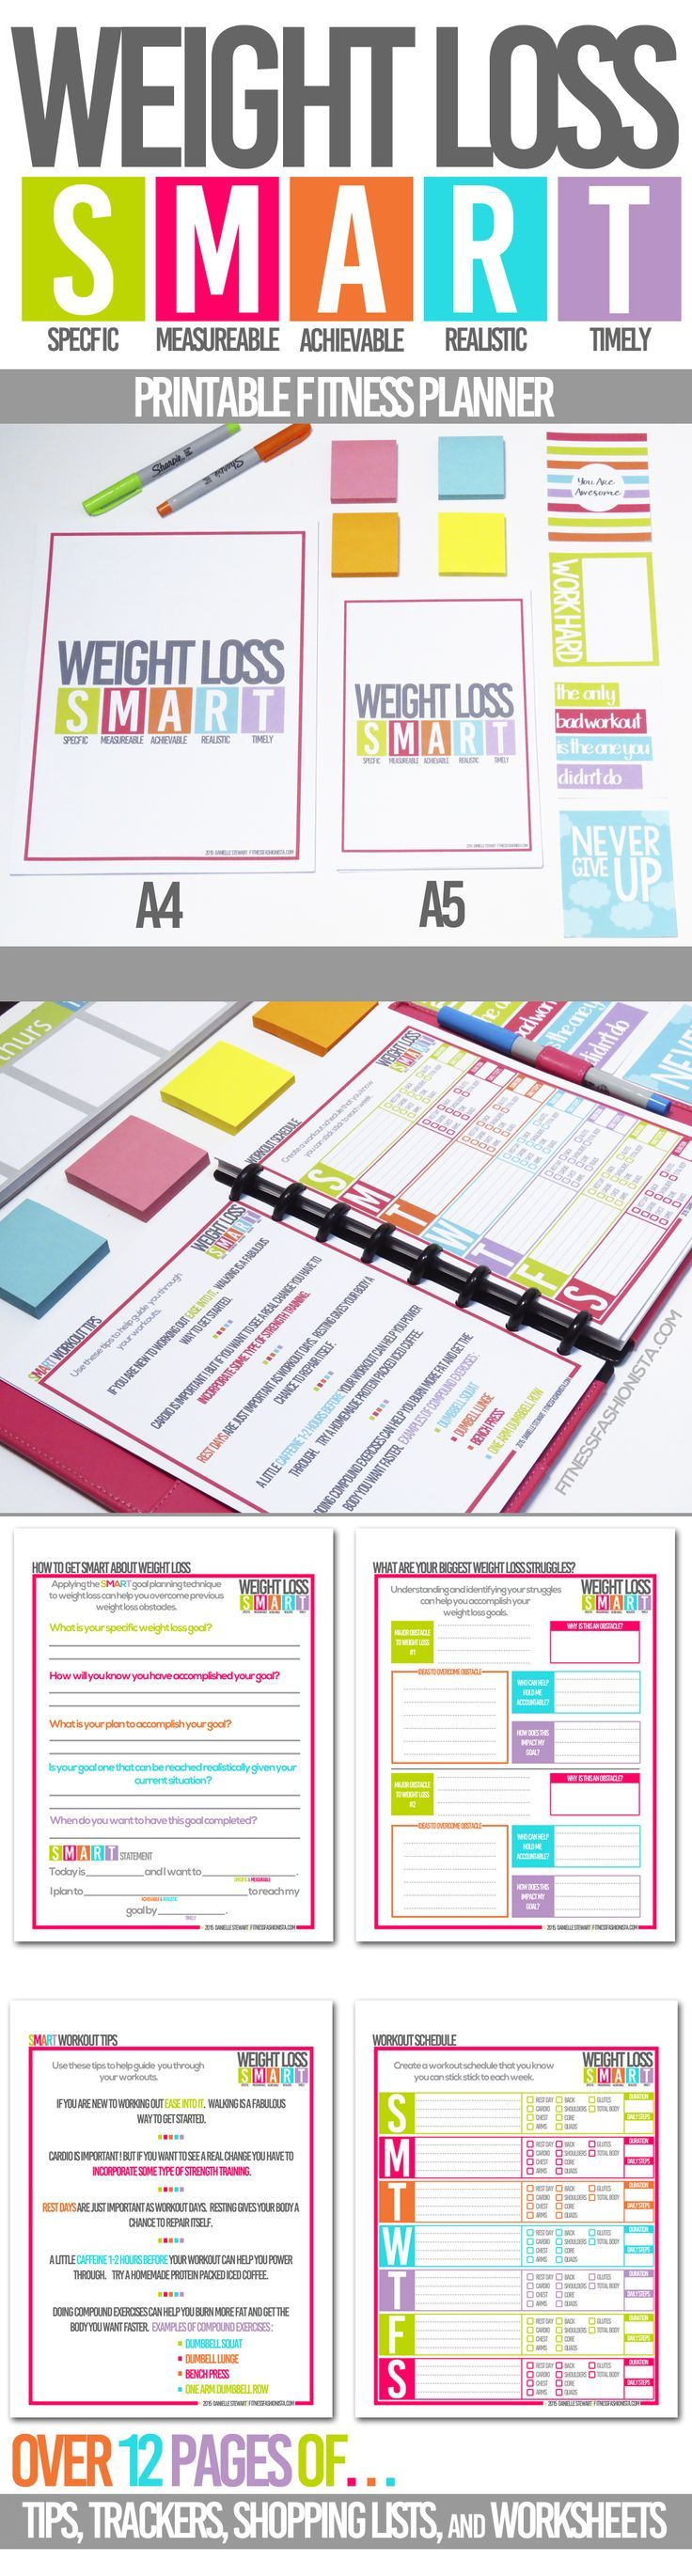 SMART Weight Loss printable Fitness Planner to help keep weight loss on track. - Fitness Deals